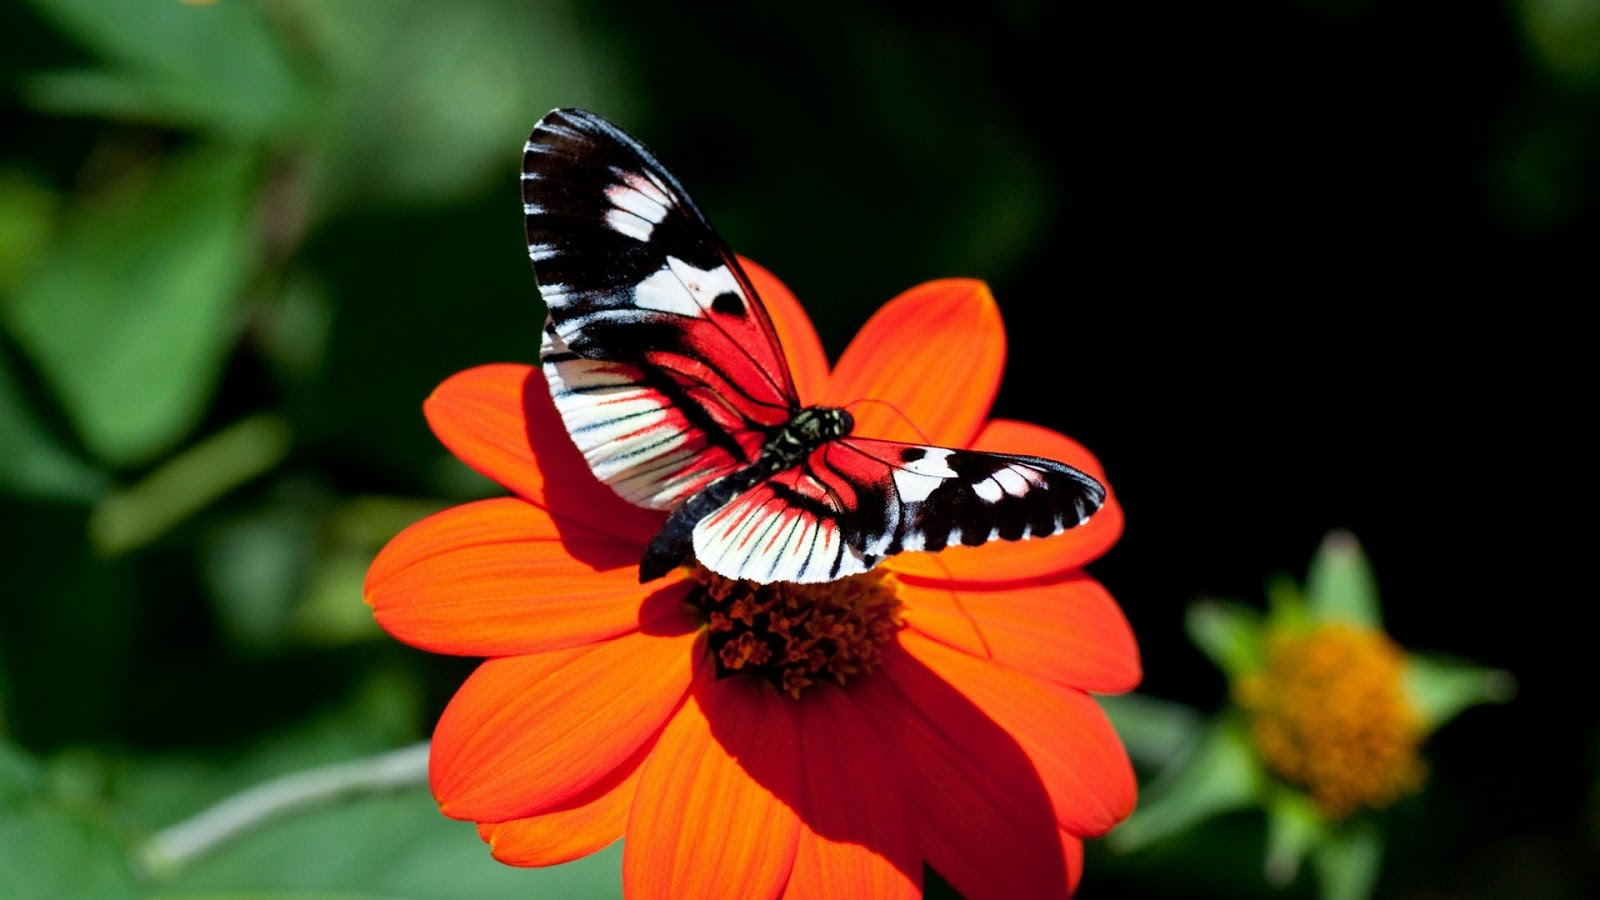 Butterflies Wallpapers Hd Download: No Comments: